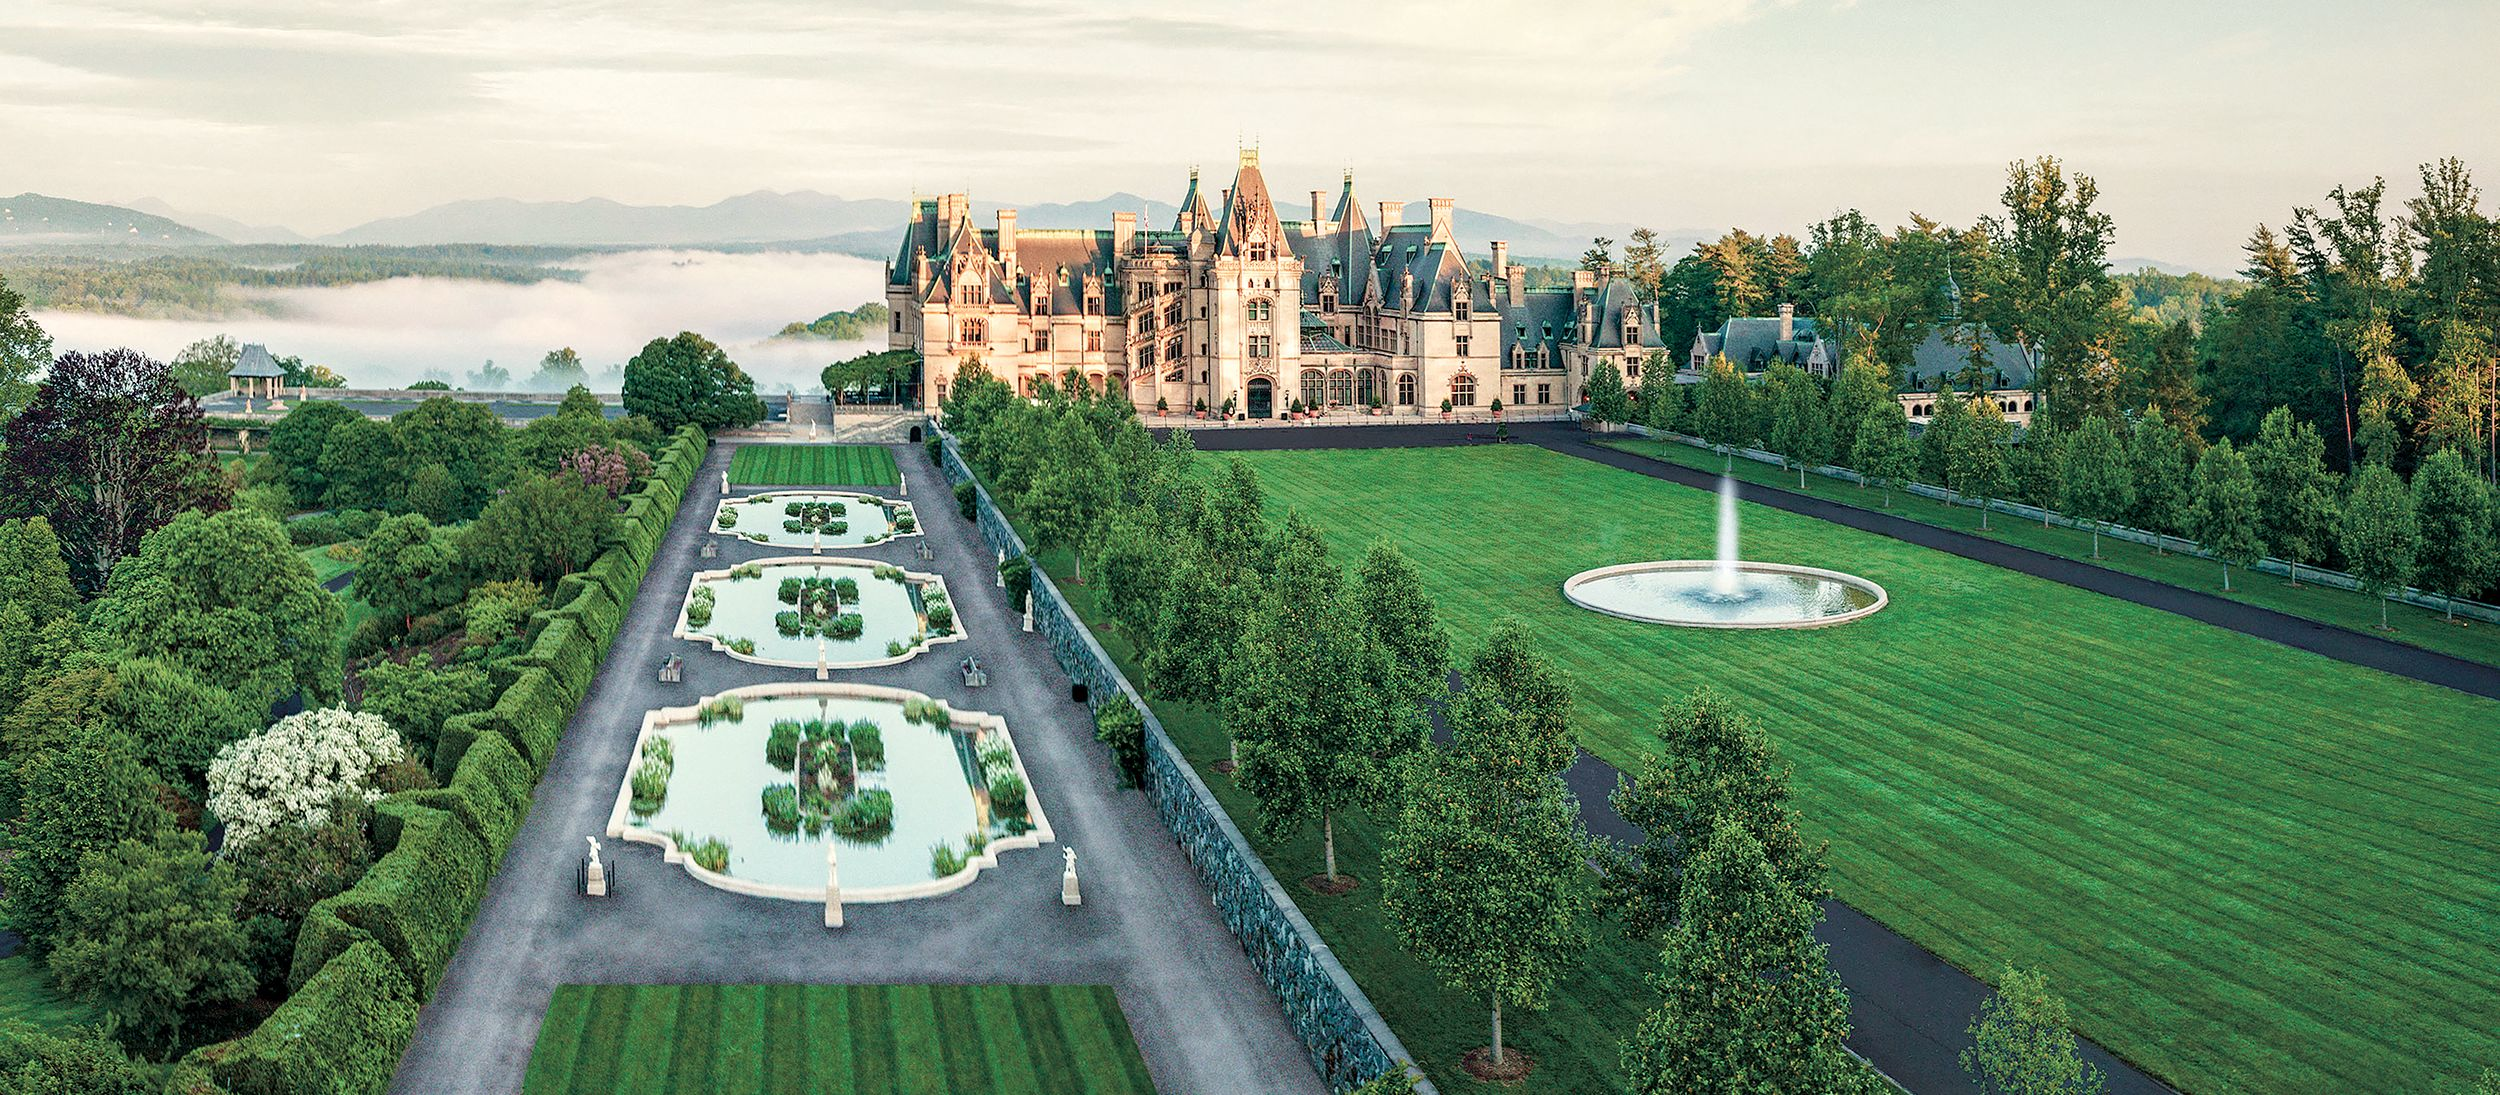 Biltmore House & Gardens in North Carolina